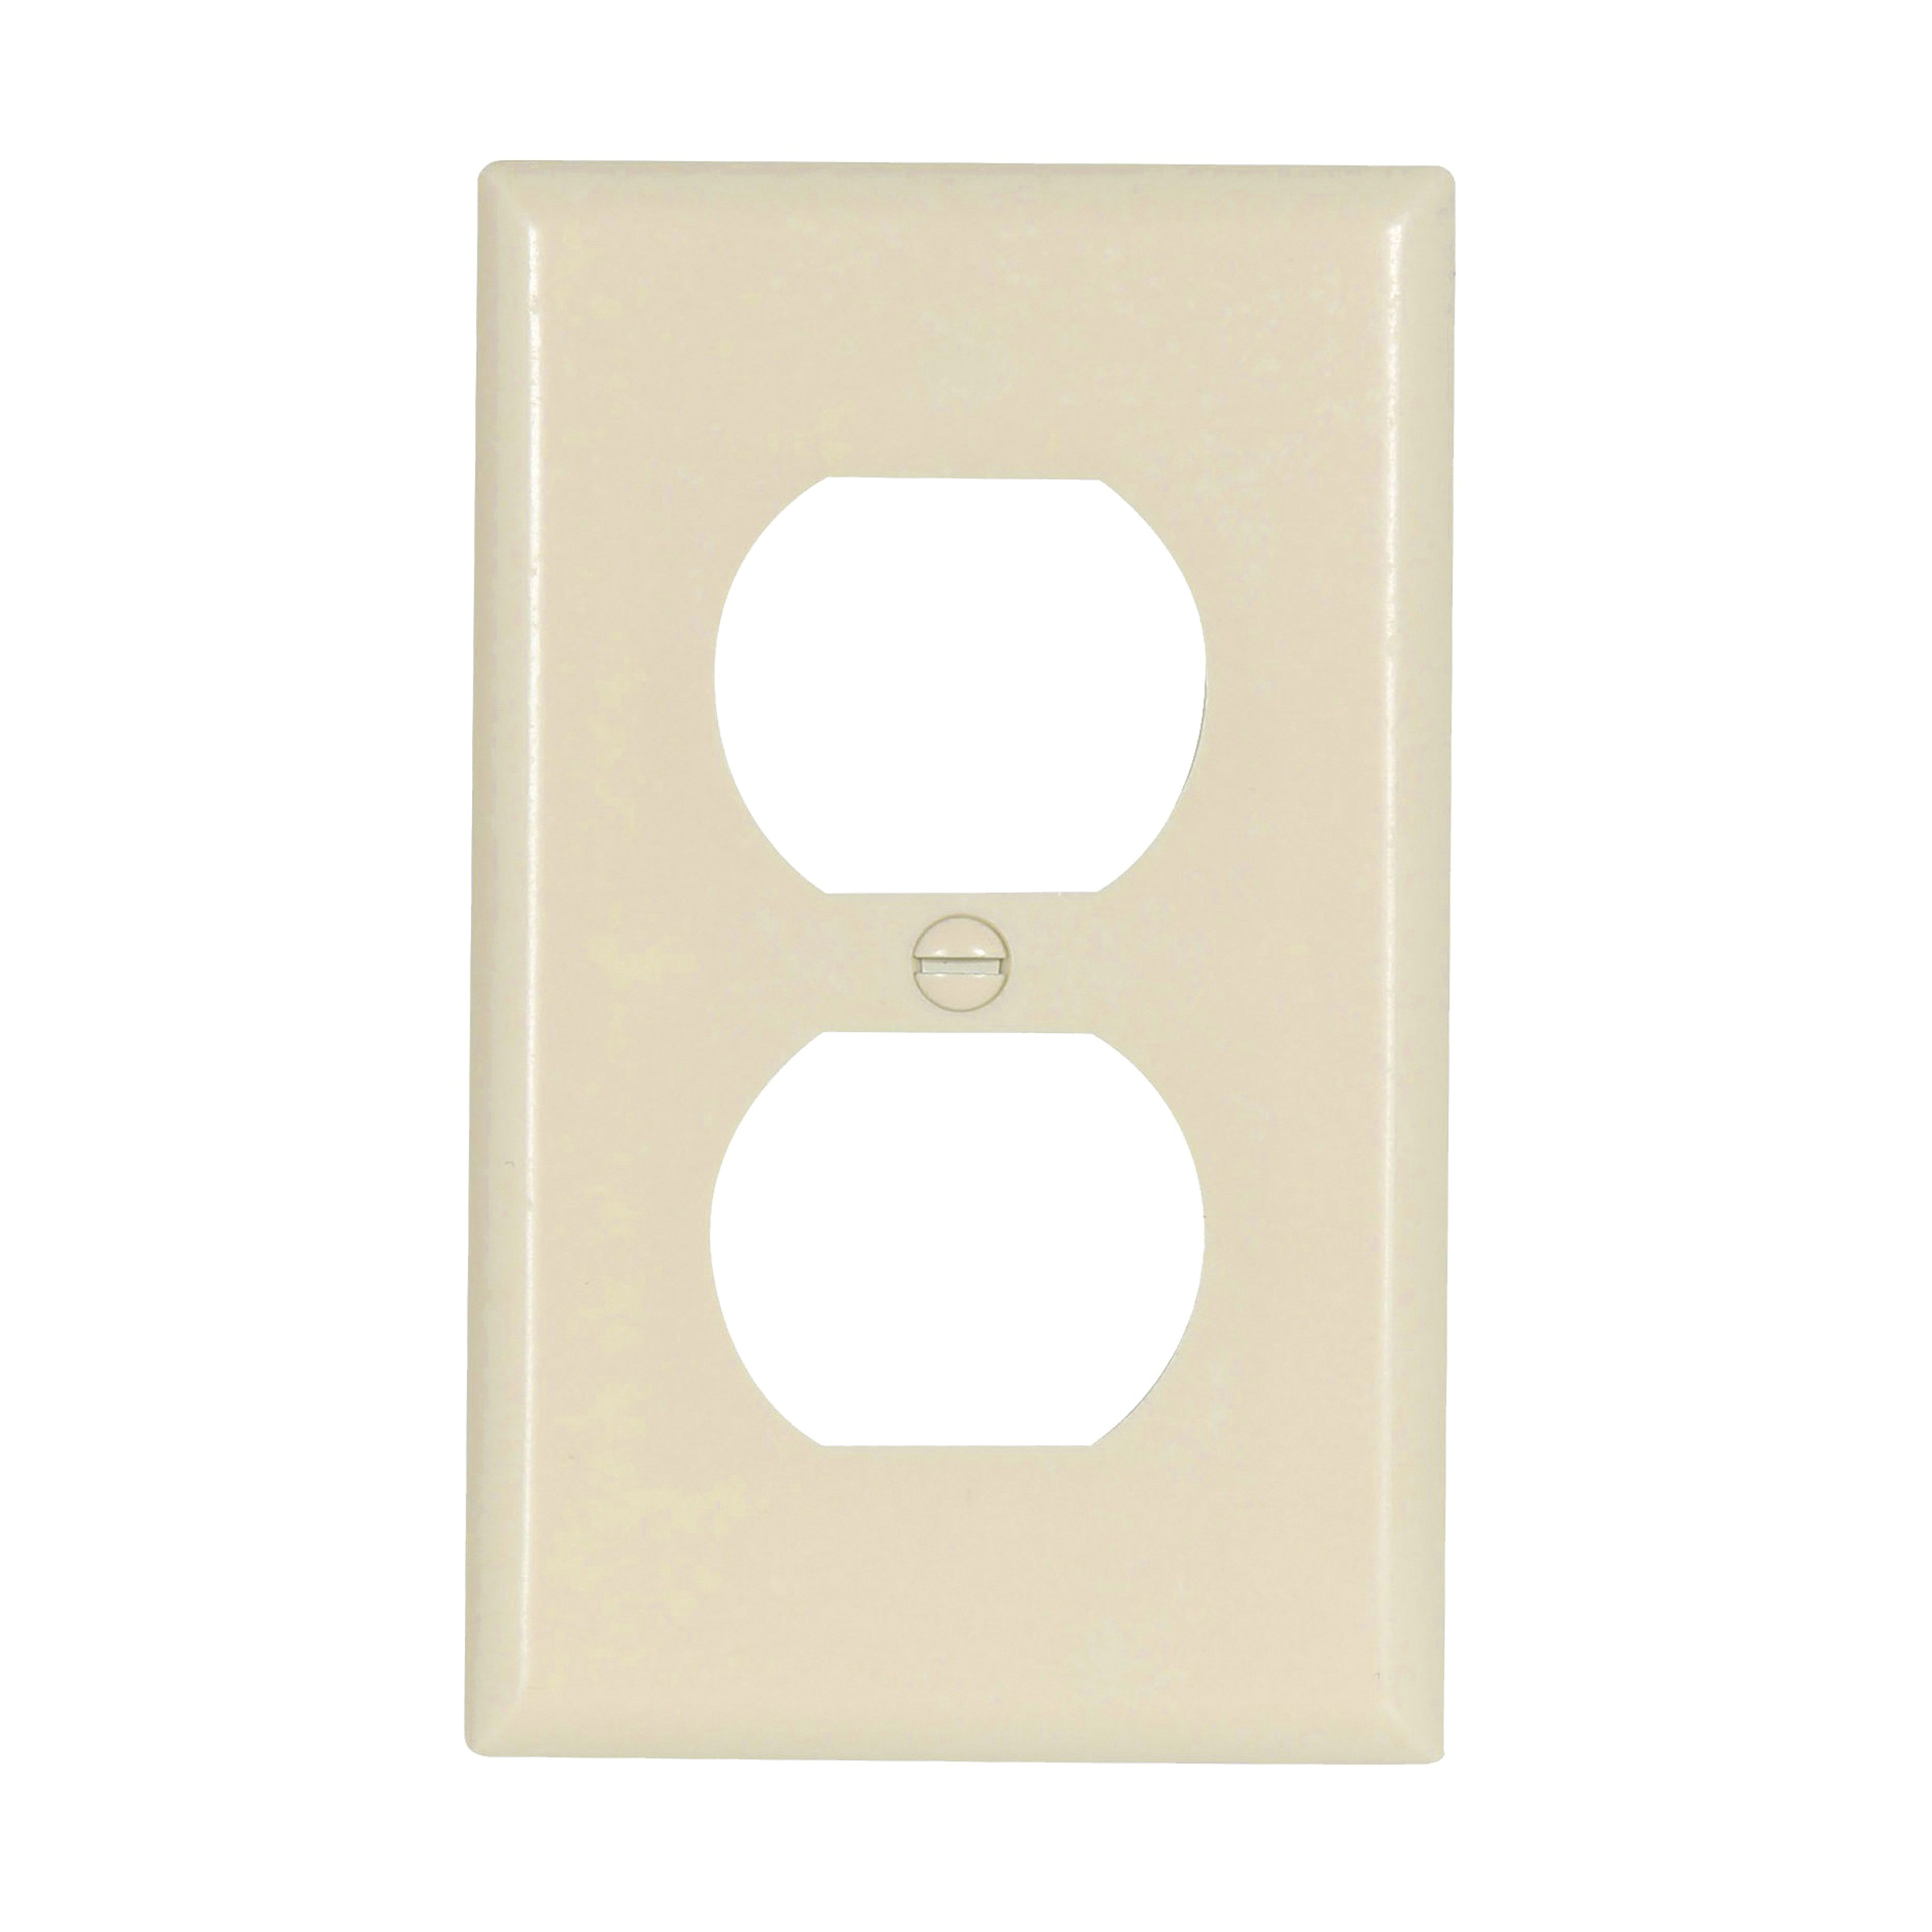 Picture of Eaton Wiring Devices 2132LA-BOX Duplex Receptacle Wallplate, 4-1/2 in L, 2-3/4 in W, 1-Gang, Thermoset, High-Gloss